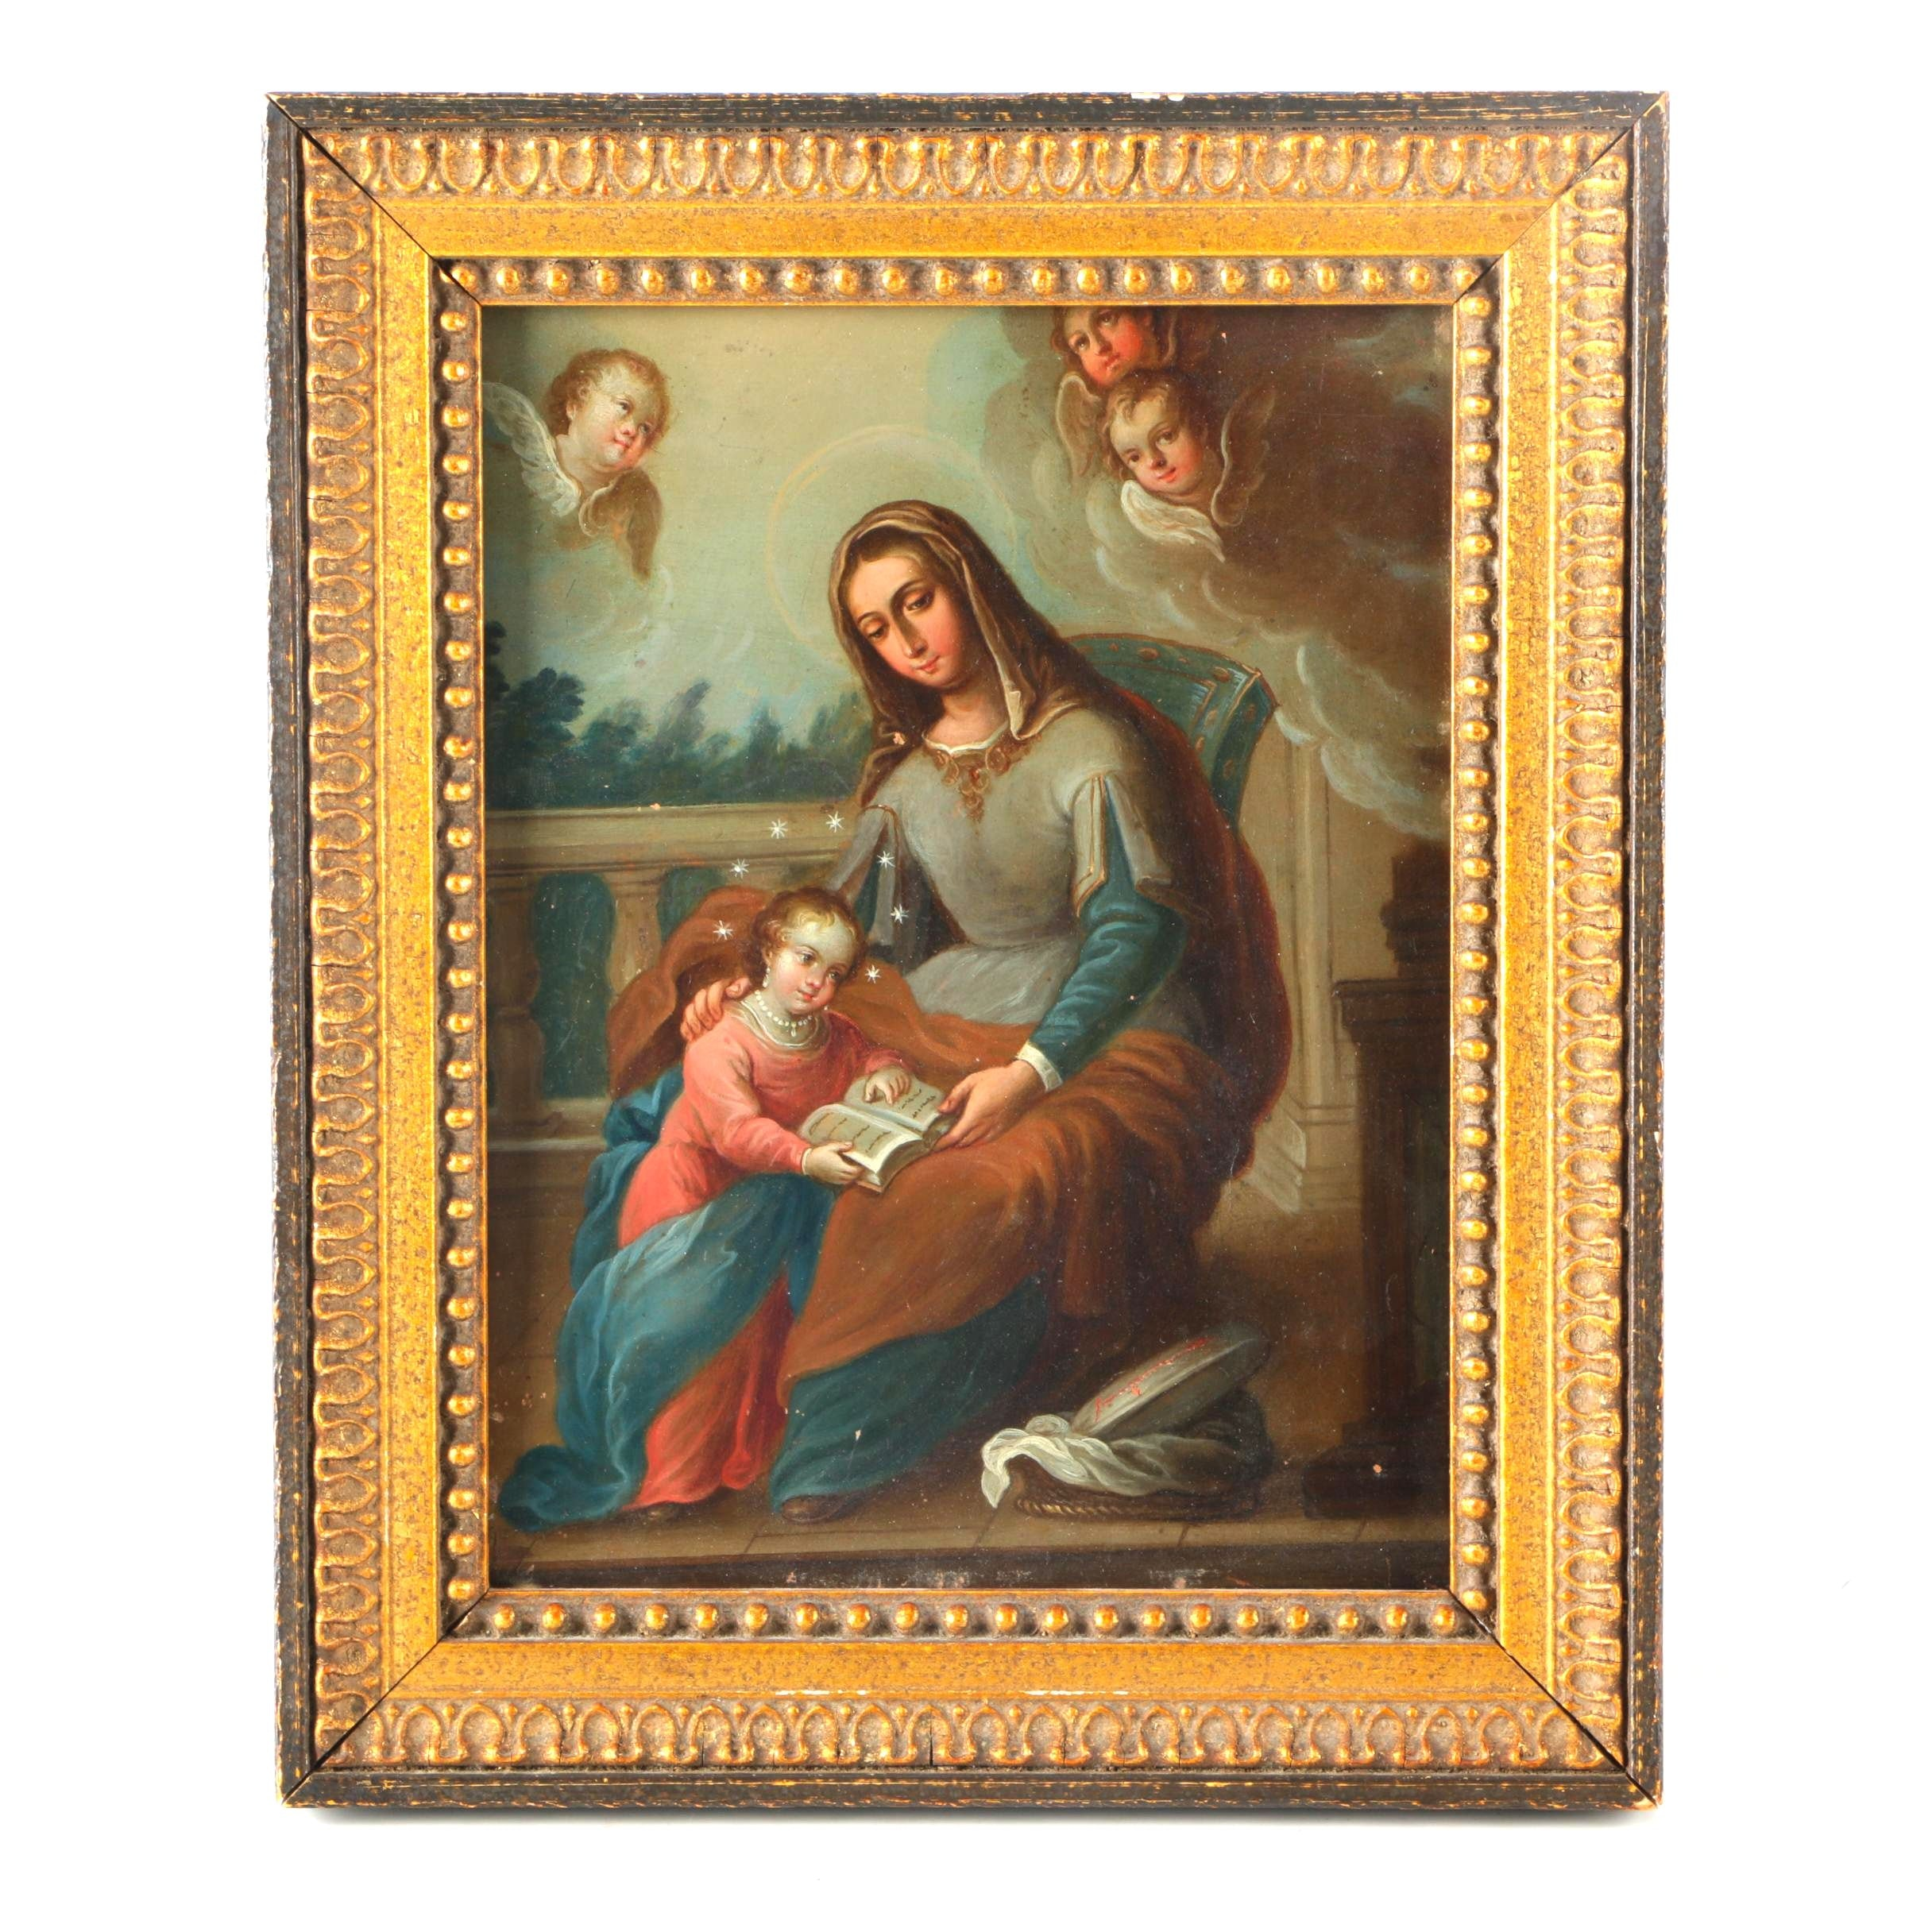 17th Century Oil Painting on Copper of the Madonna and Child